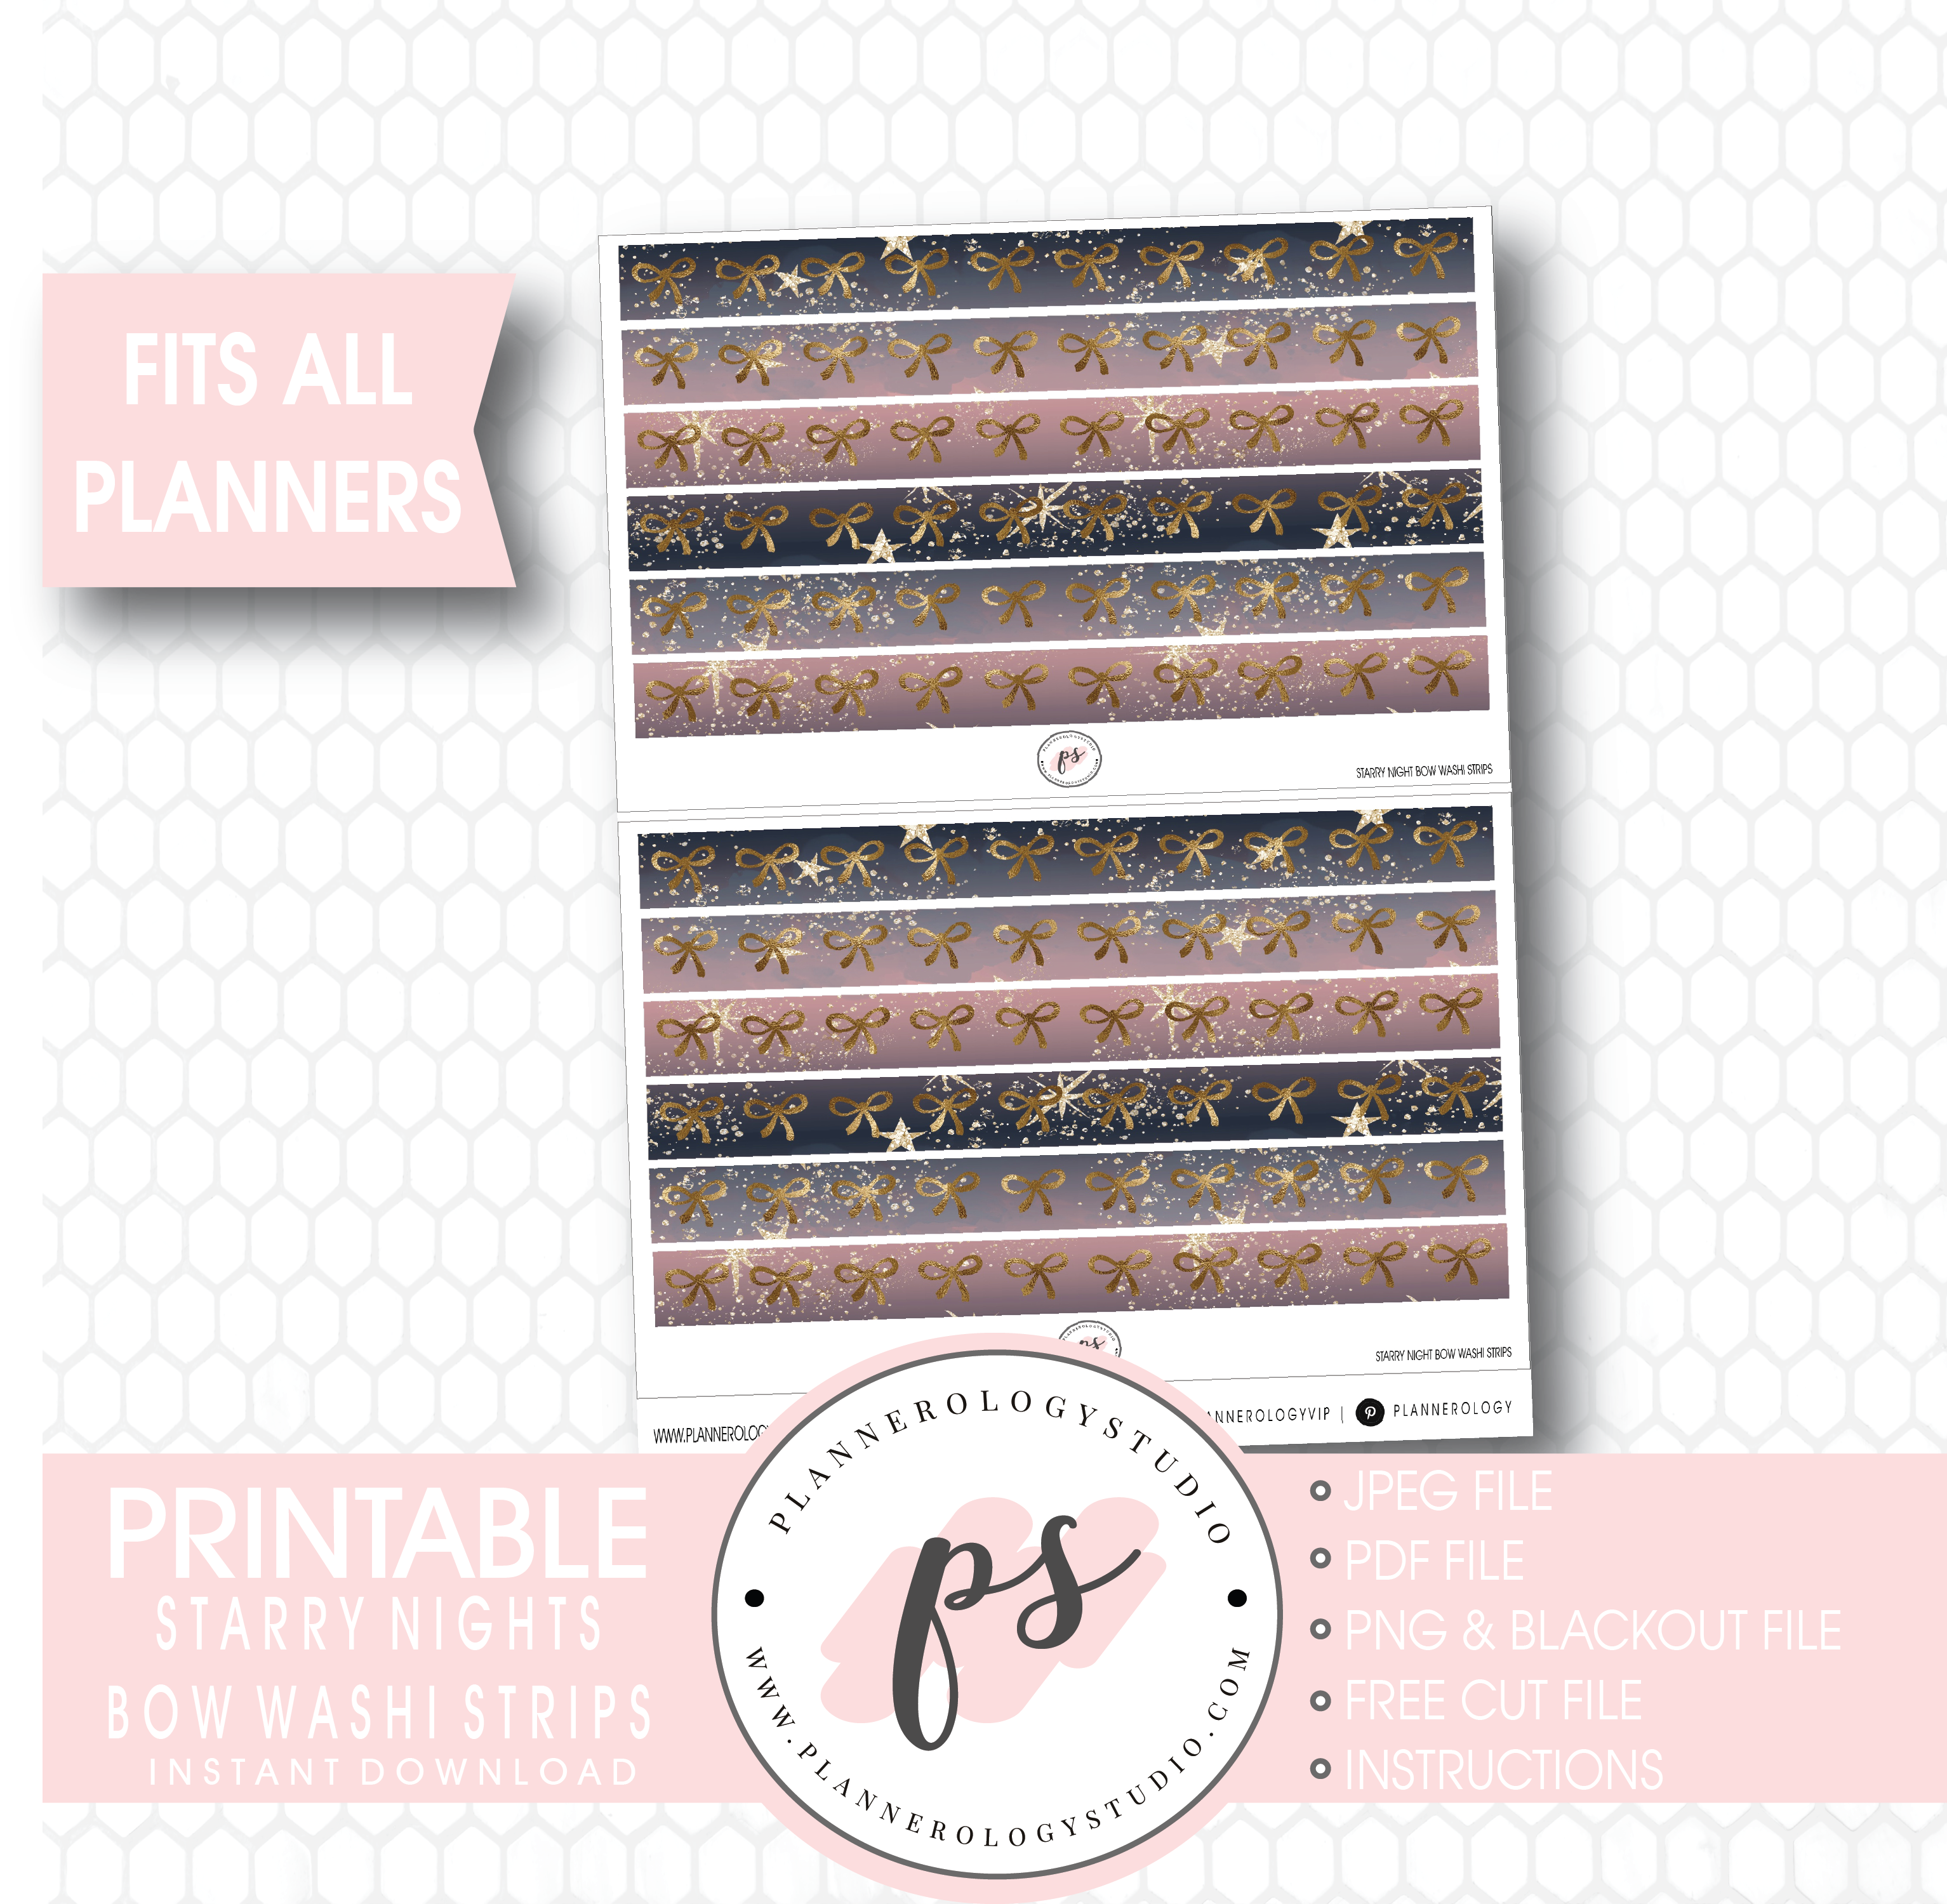 picture about Starry Night Printable named Starry Evenings Watercolour Behavior Bow Icon Washi Strip Electronic Printable Planner Stickers